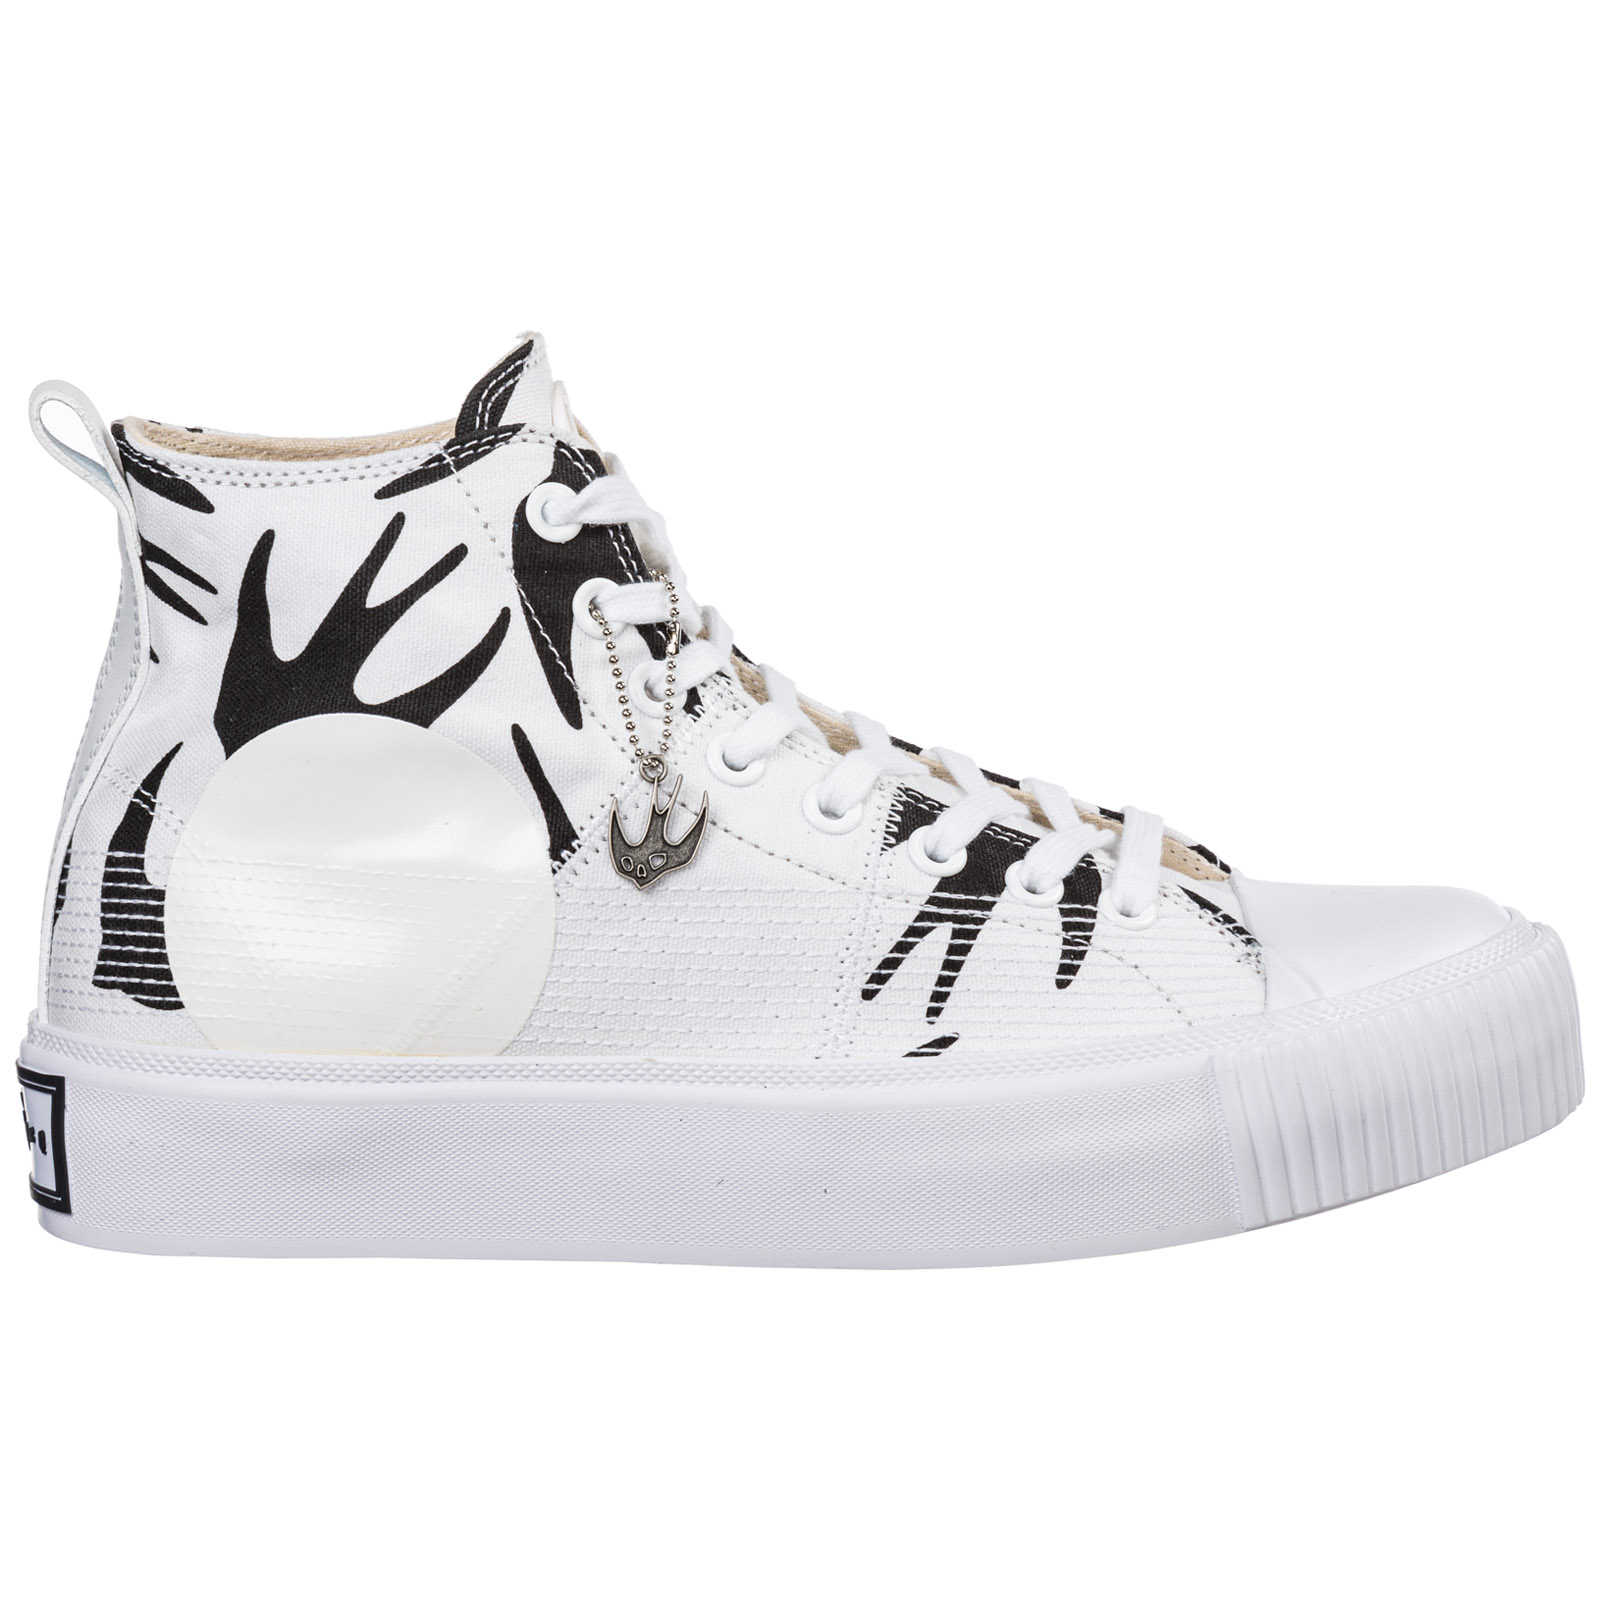 Men's shoes high top trainers sneakers plimsoll platform